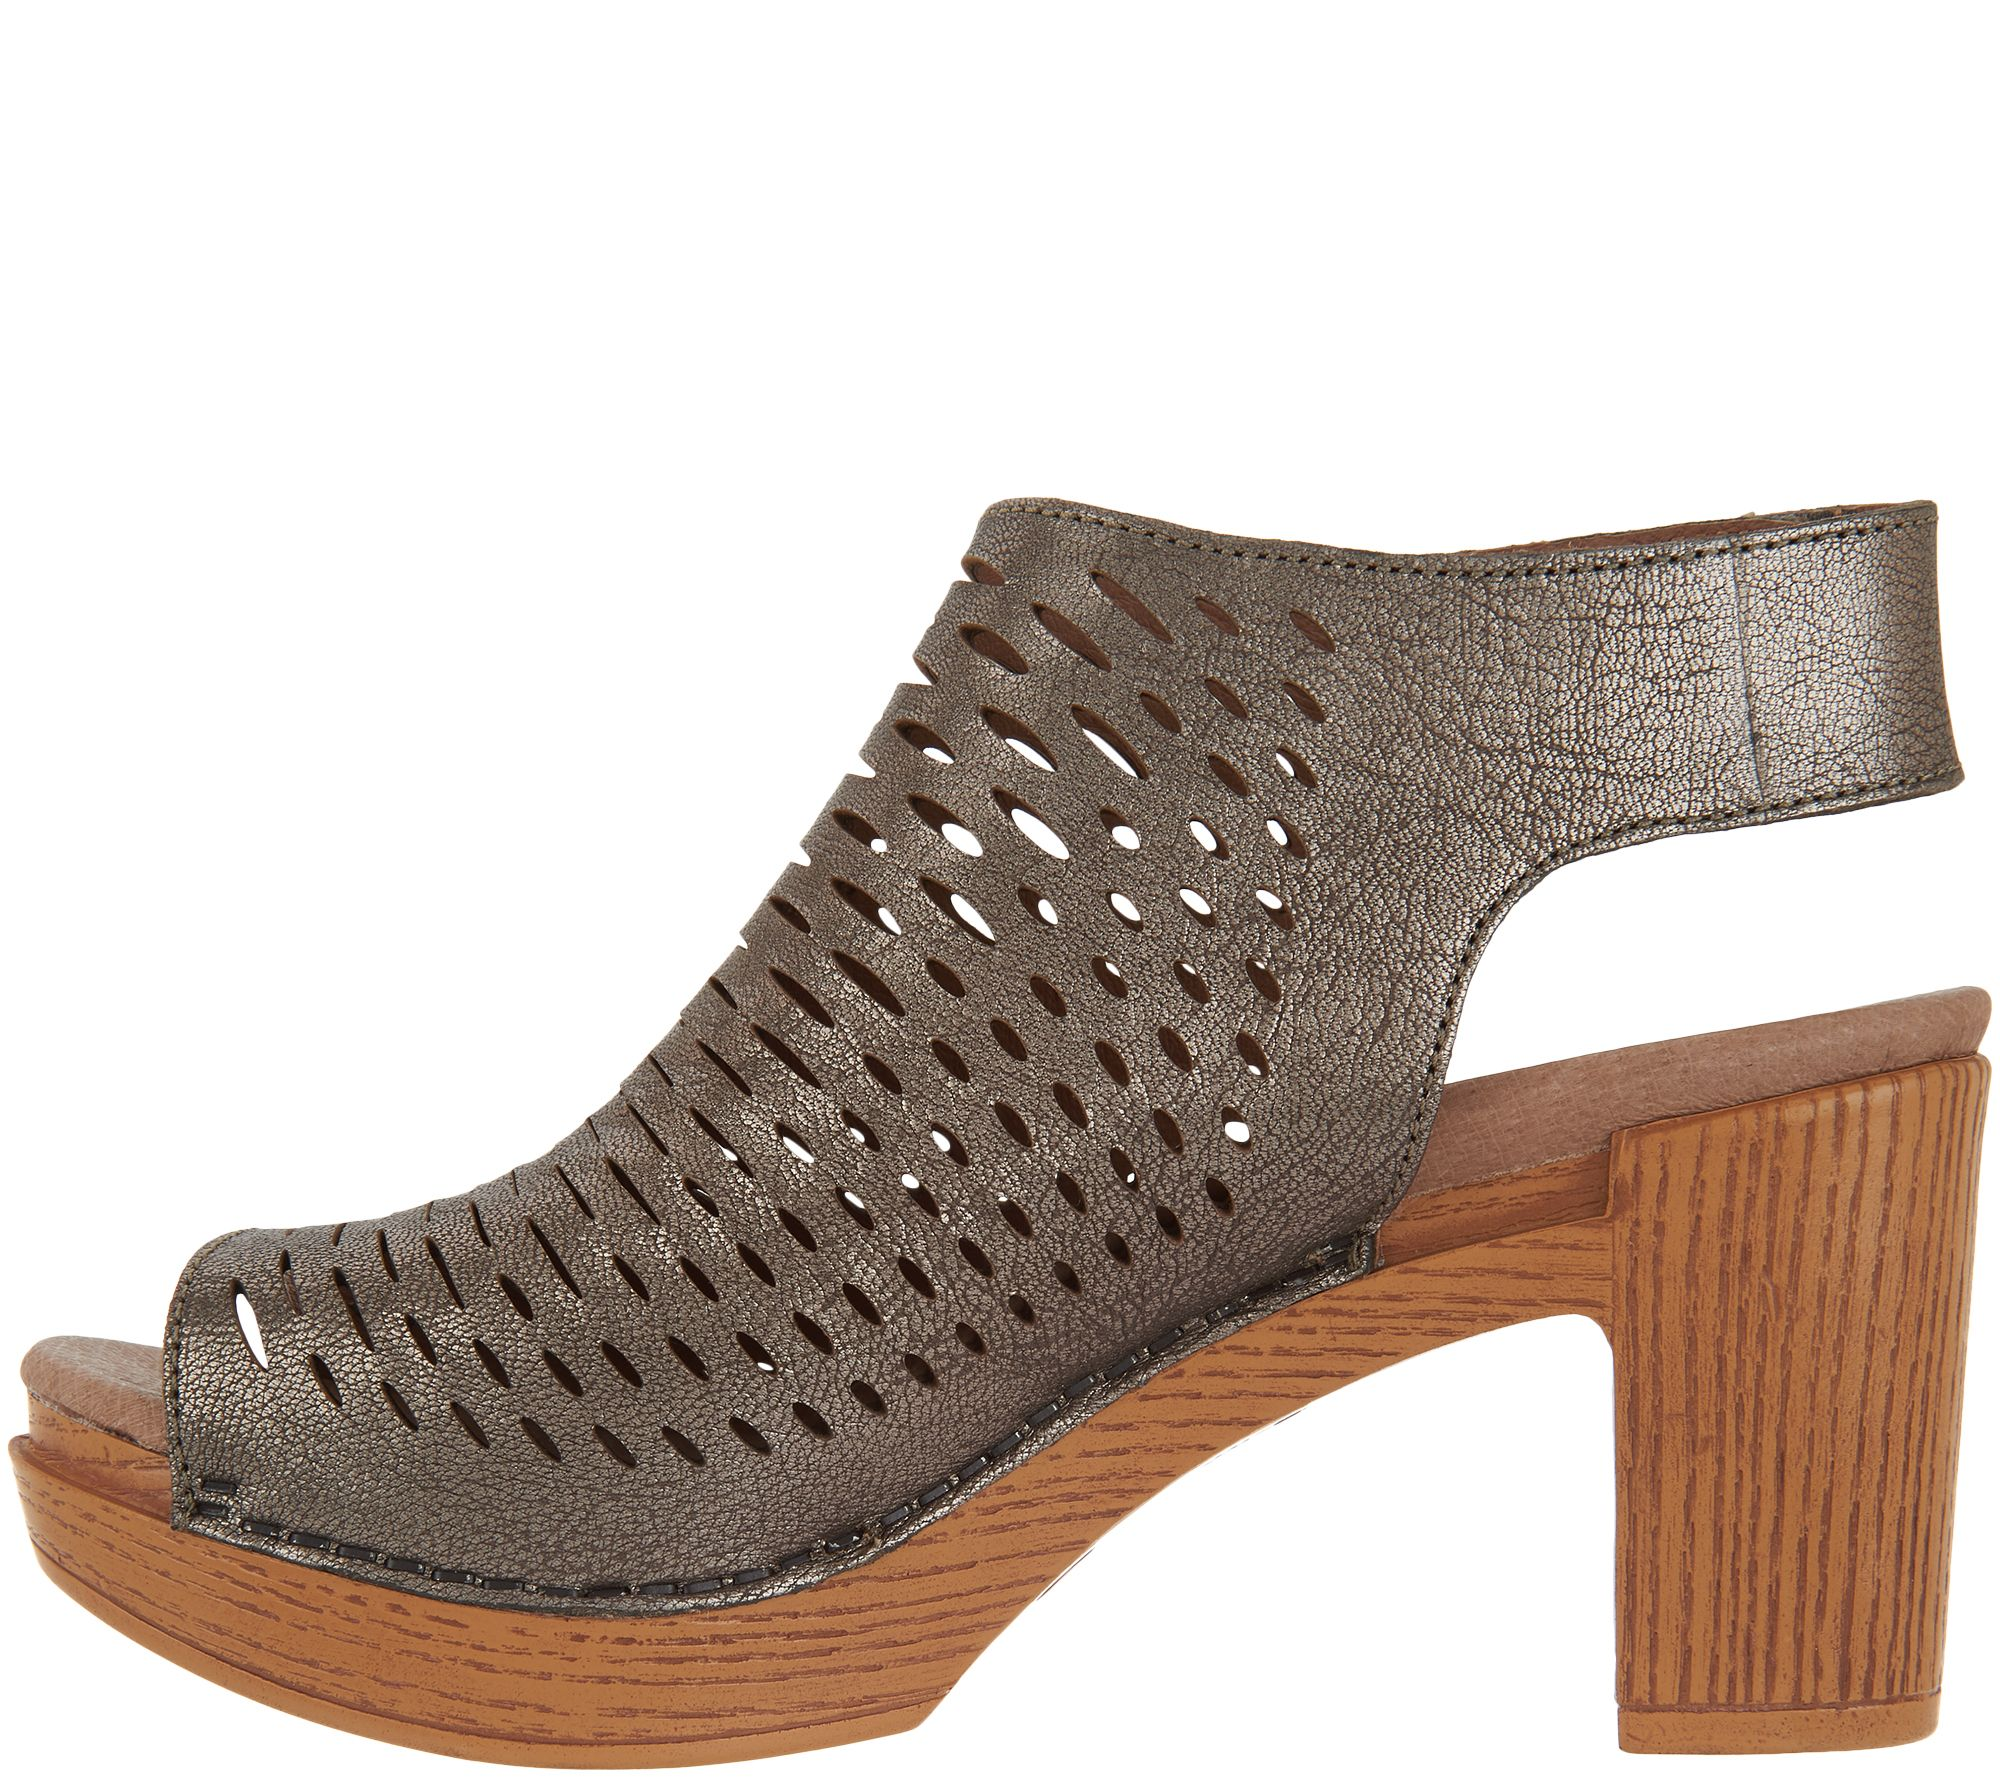 8112453a60a Dansko Perforated Leather Heeled Sandals - Danae - Page 1 — QVC.com